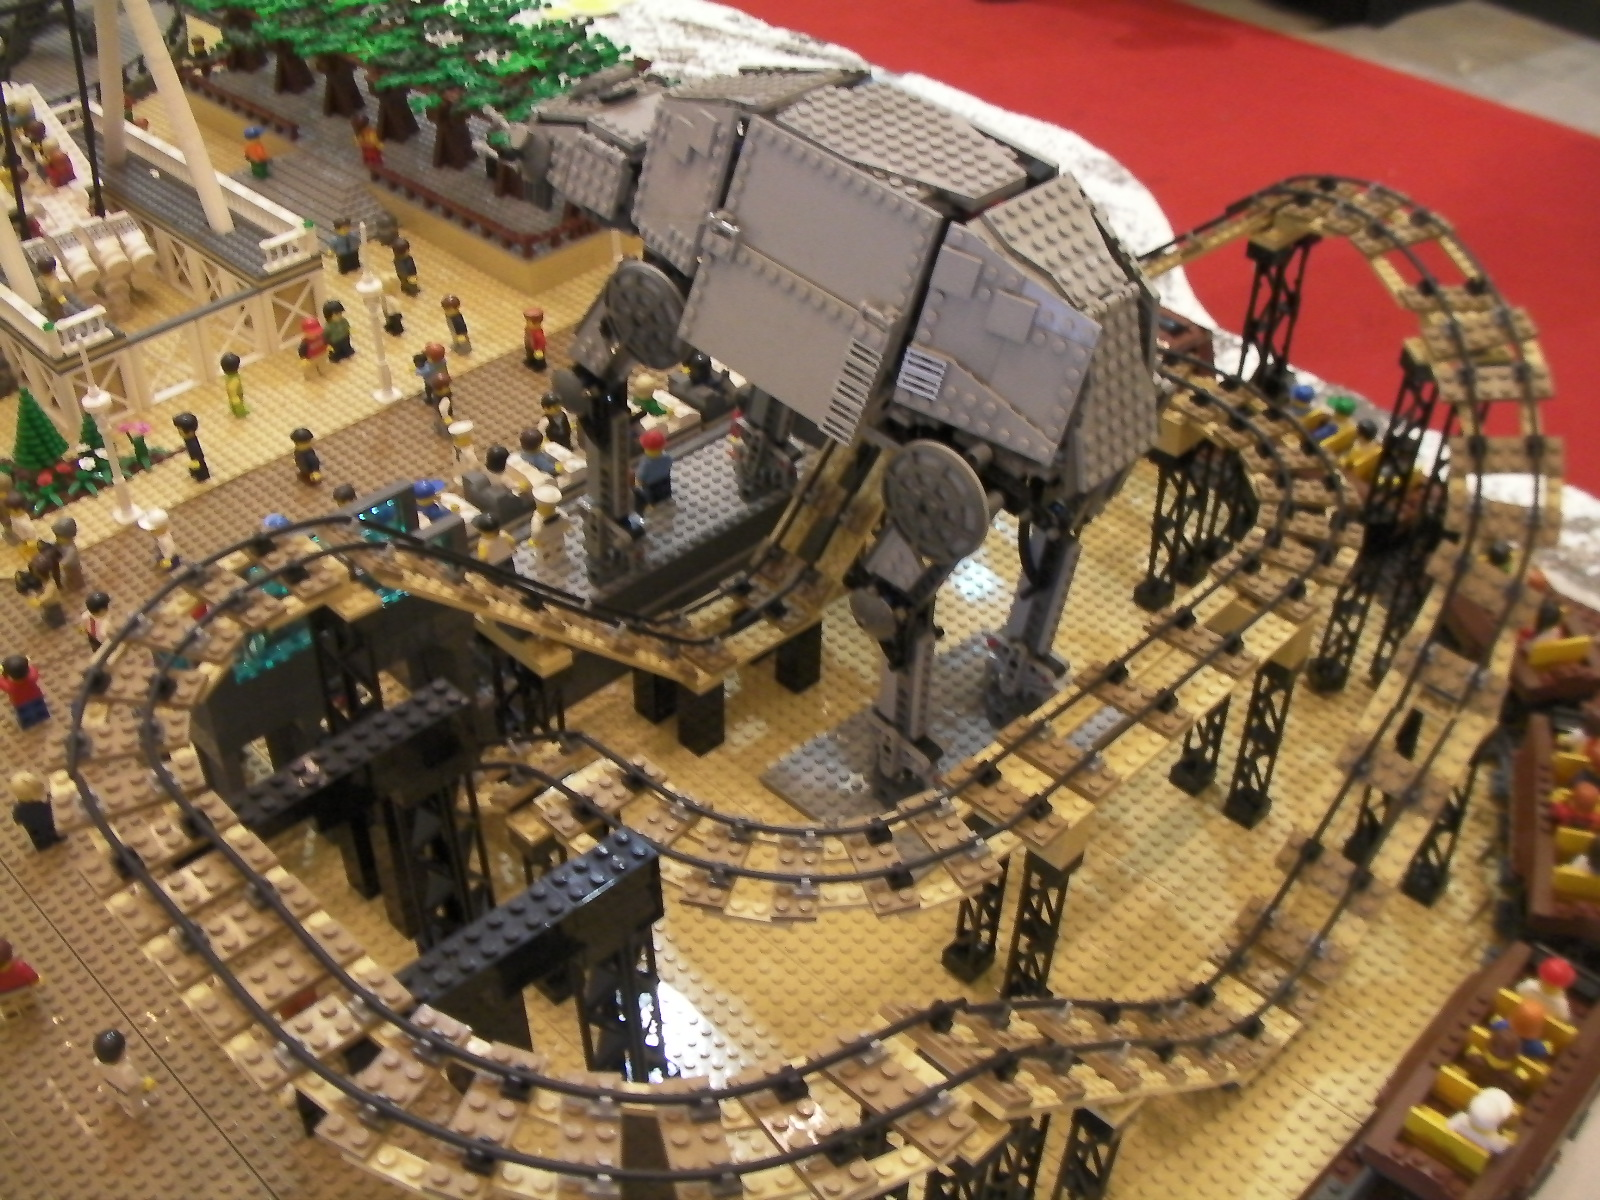 lego_childrenday_2013_2.jpg